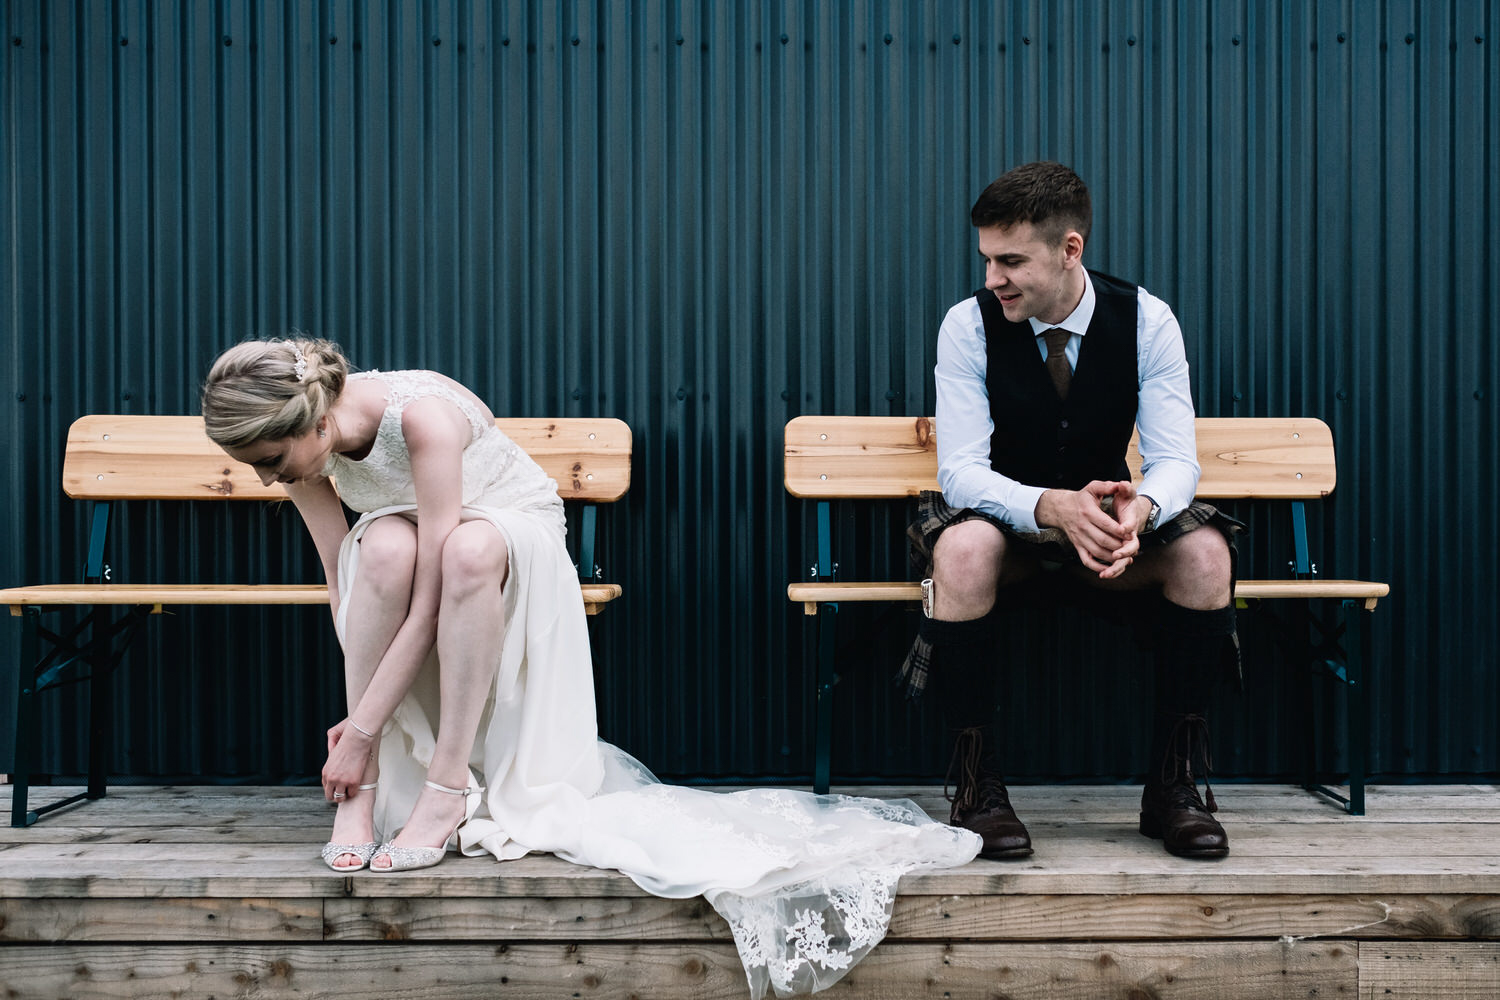 A couple sit on a bench